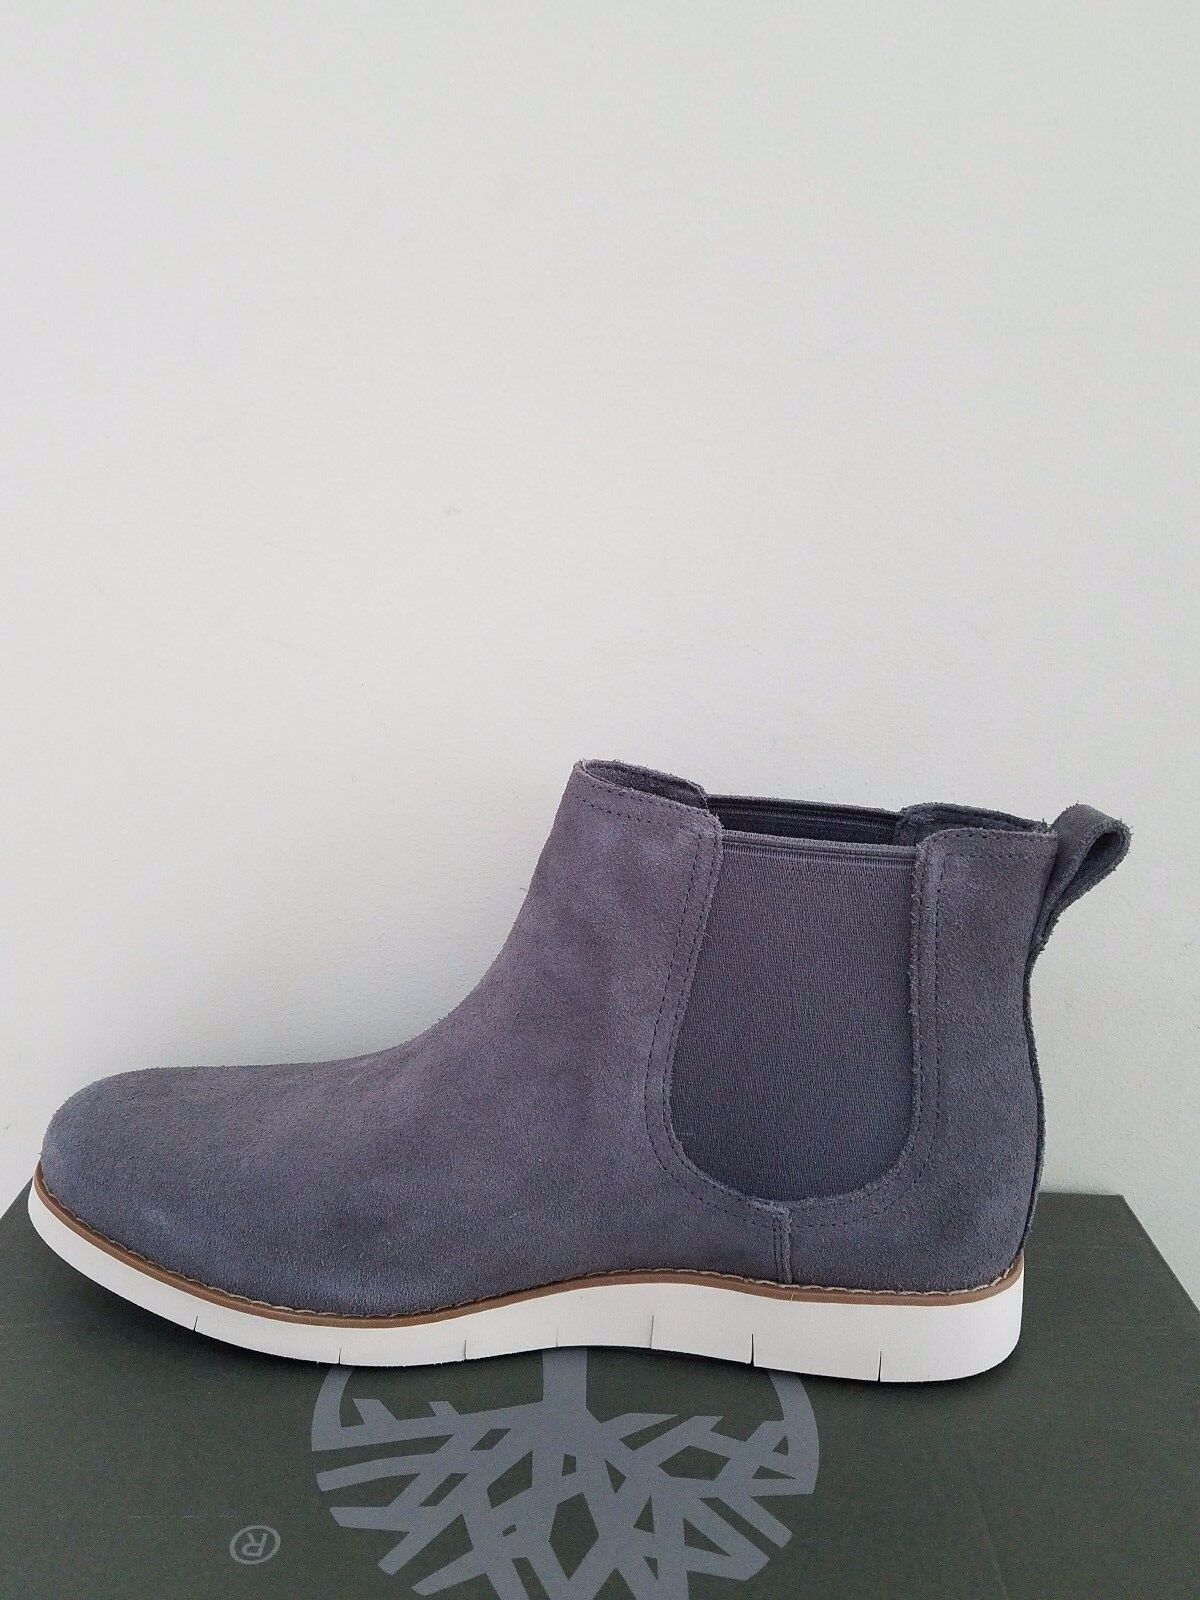 Timberland Women's Lakeville Double Gore Chelsea  Boots NIB 1